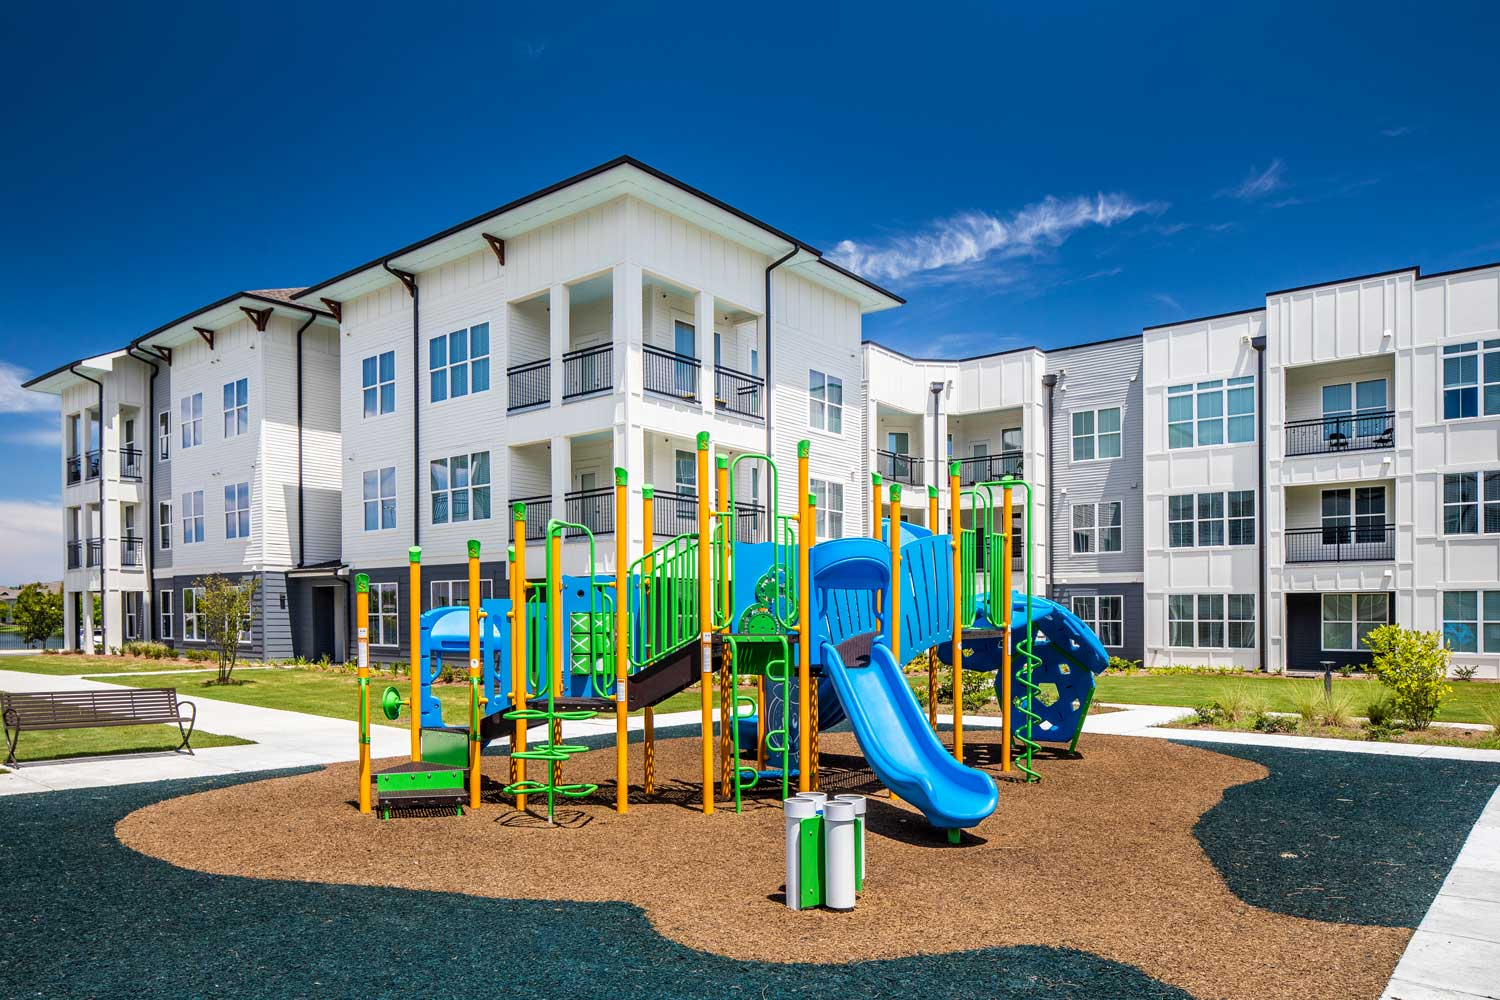 Playground at Sawgrass Point in Gonzales, Louisiana